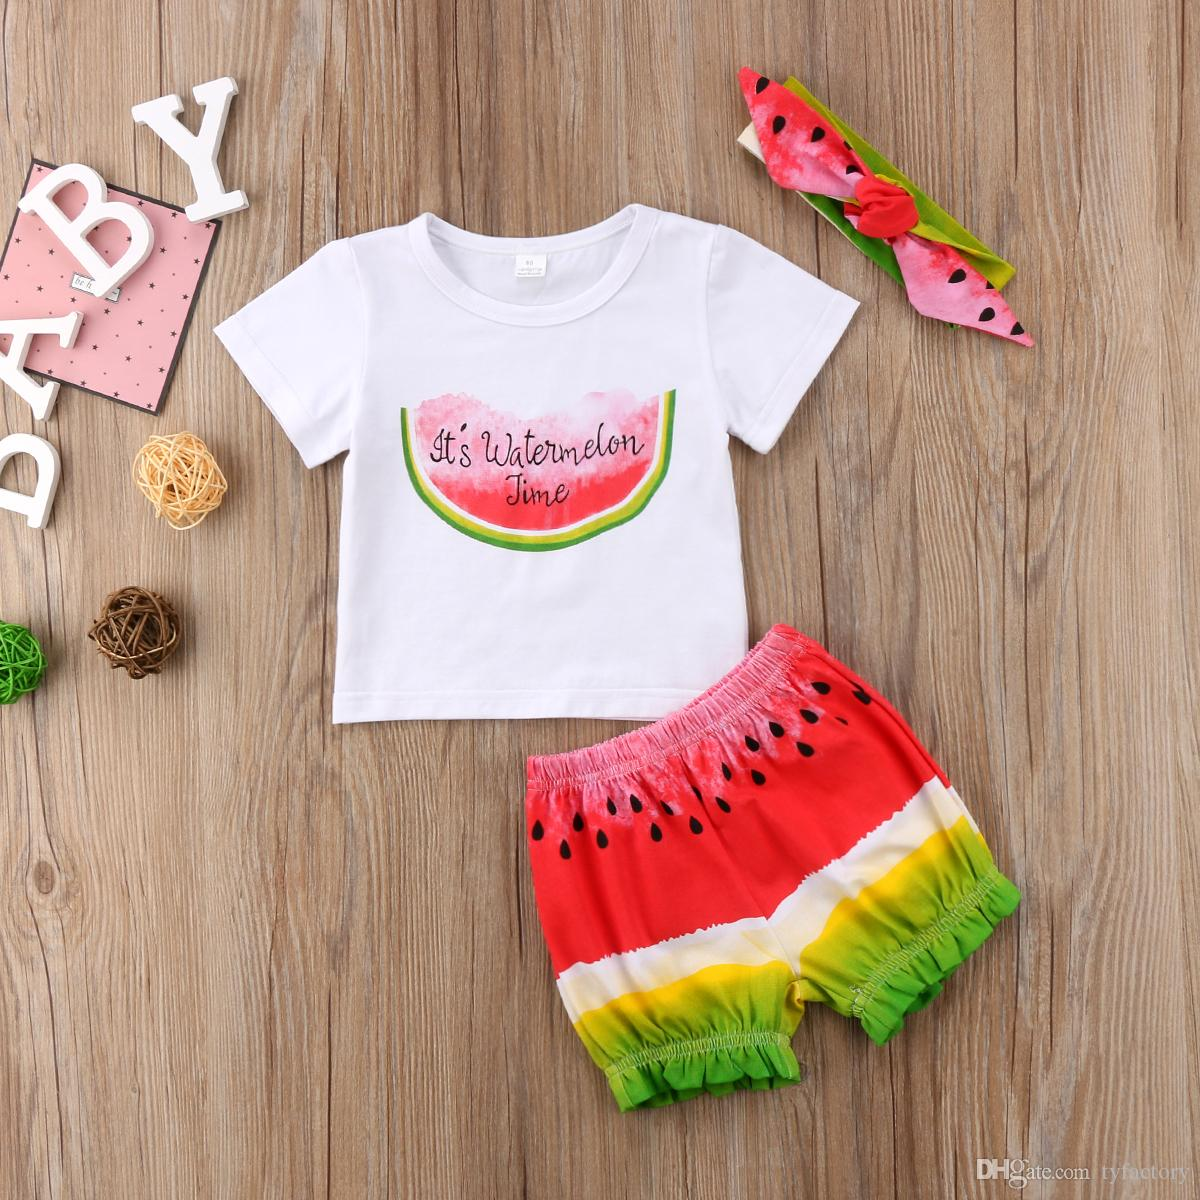 5b8be9ab1 Summer Baby Girls Clothes Watermelon Time T-shirt+Shorts+Headband 3PCS  Outfits Set Fashion Kid Clothing Toddler Girls Clothes 0-3T